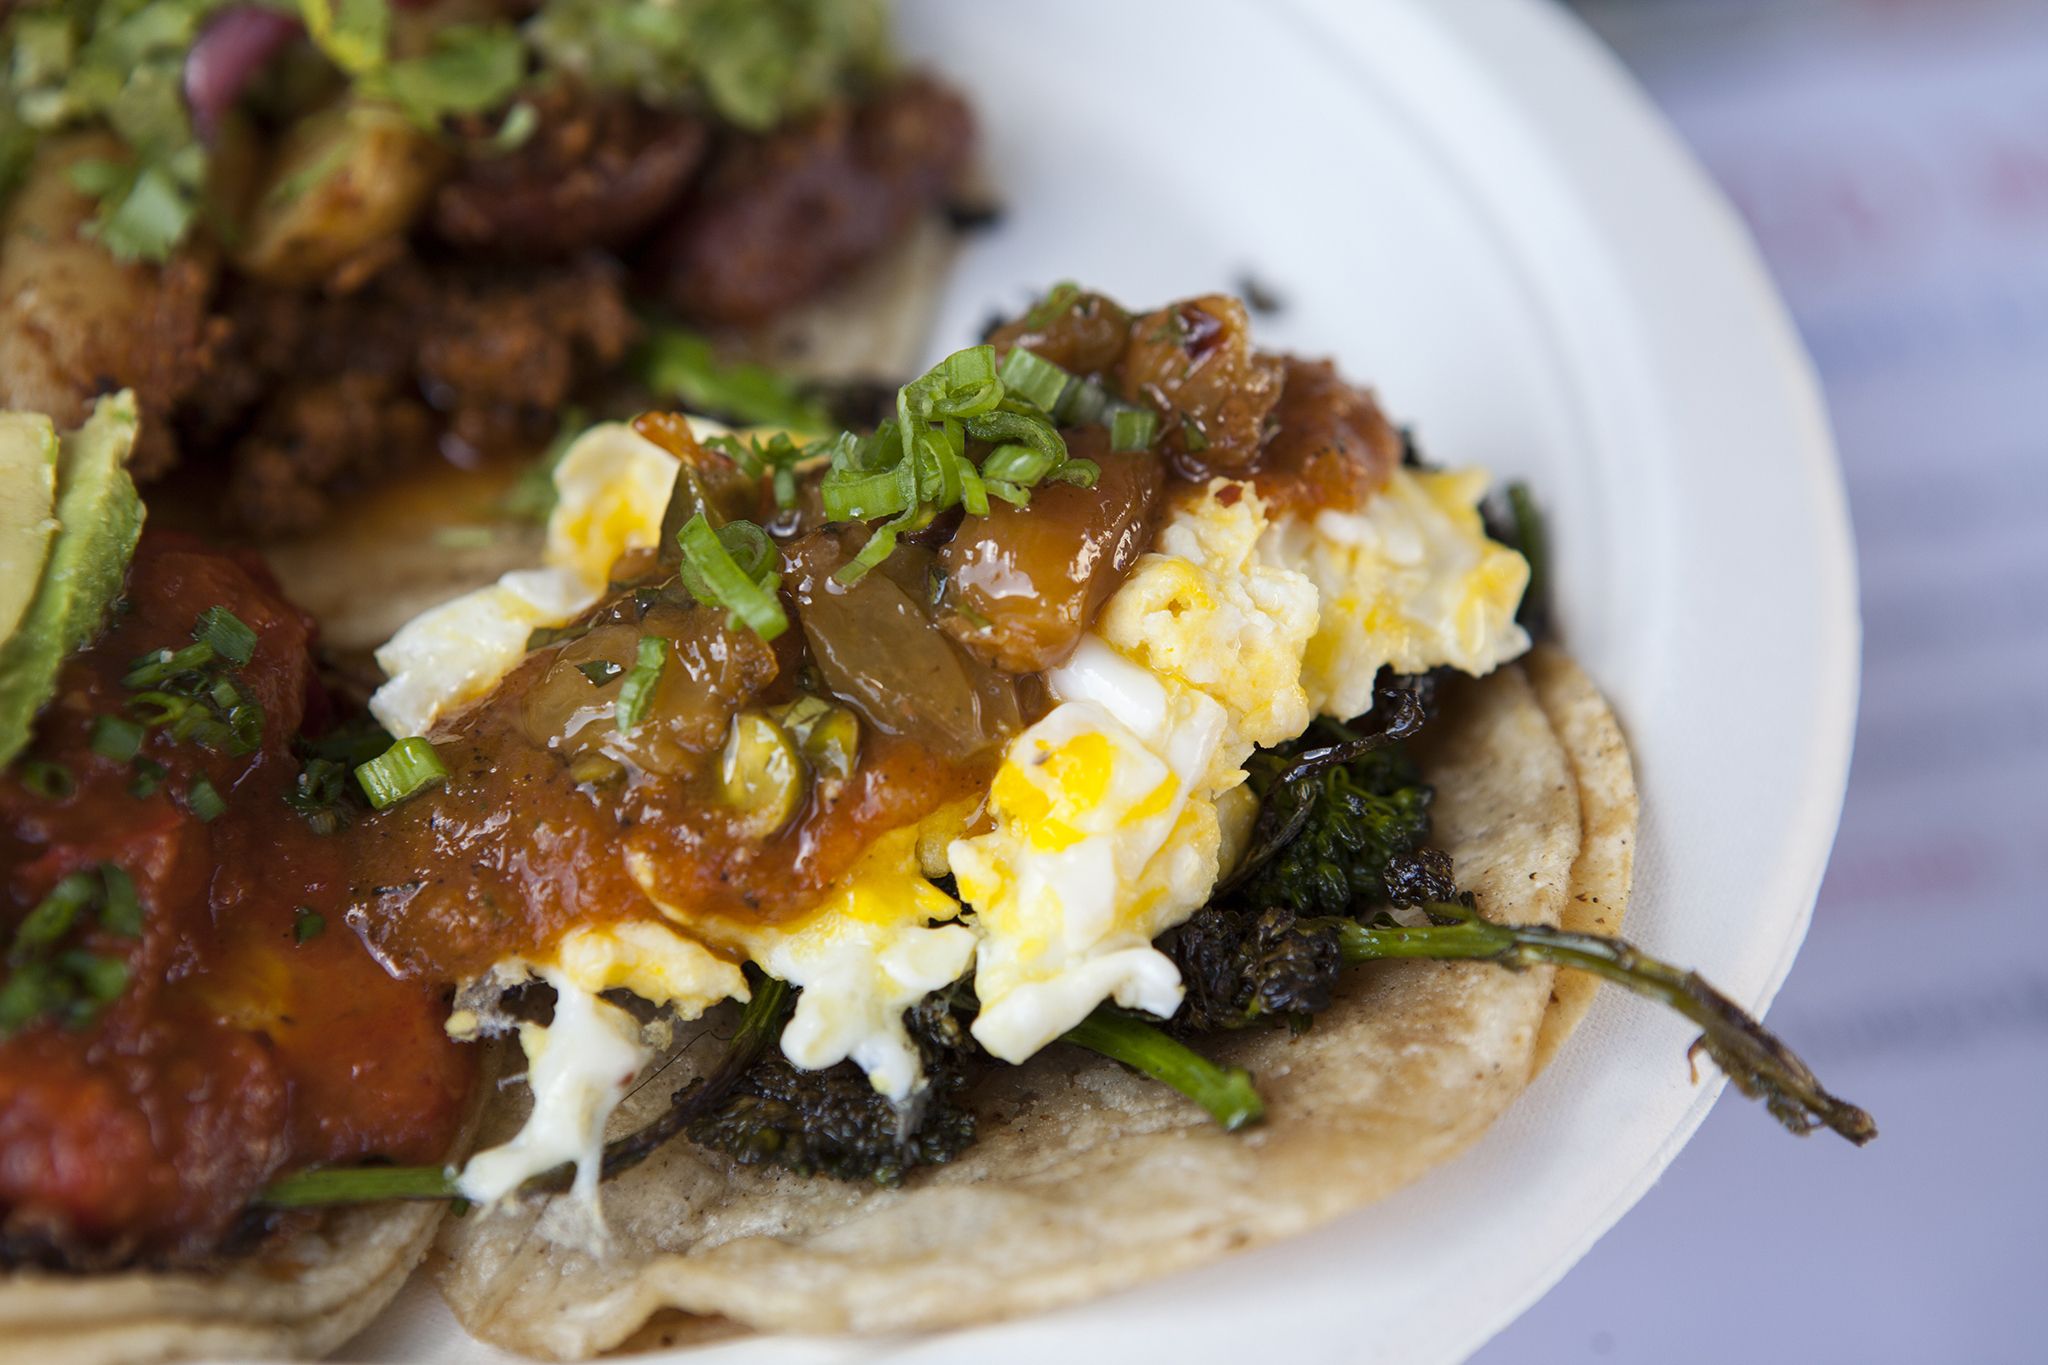 Broccoli and egg taco at Guerilla Tacos